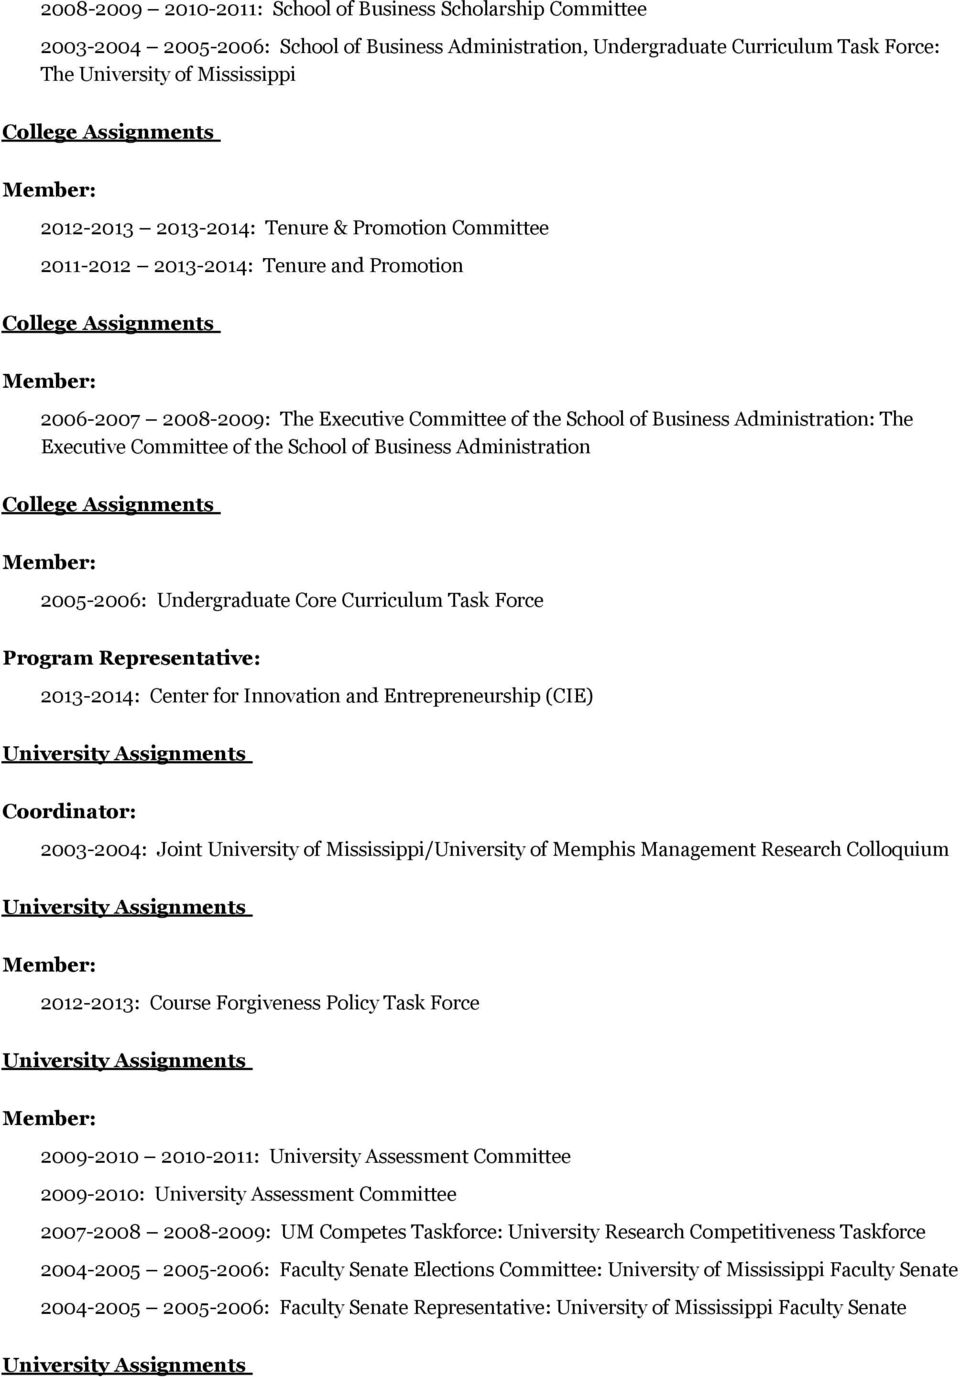 School of Business Administration 2005-2006: Undergraduate Core Curriculum Task Force Program Representative: 2013-2014: Center for Innovation and Entrepreneurship (CIE) Coordinator: 2003-2004: Joint